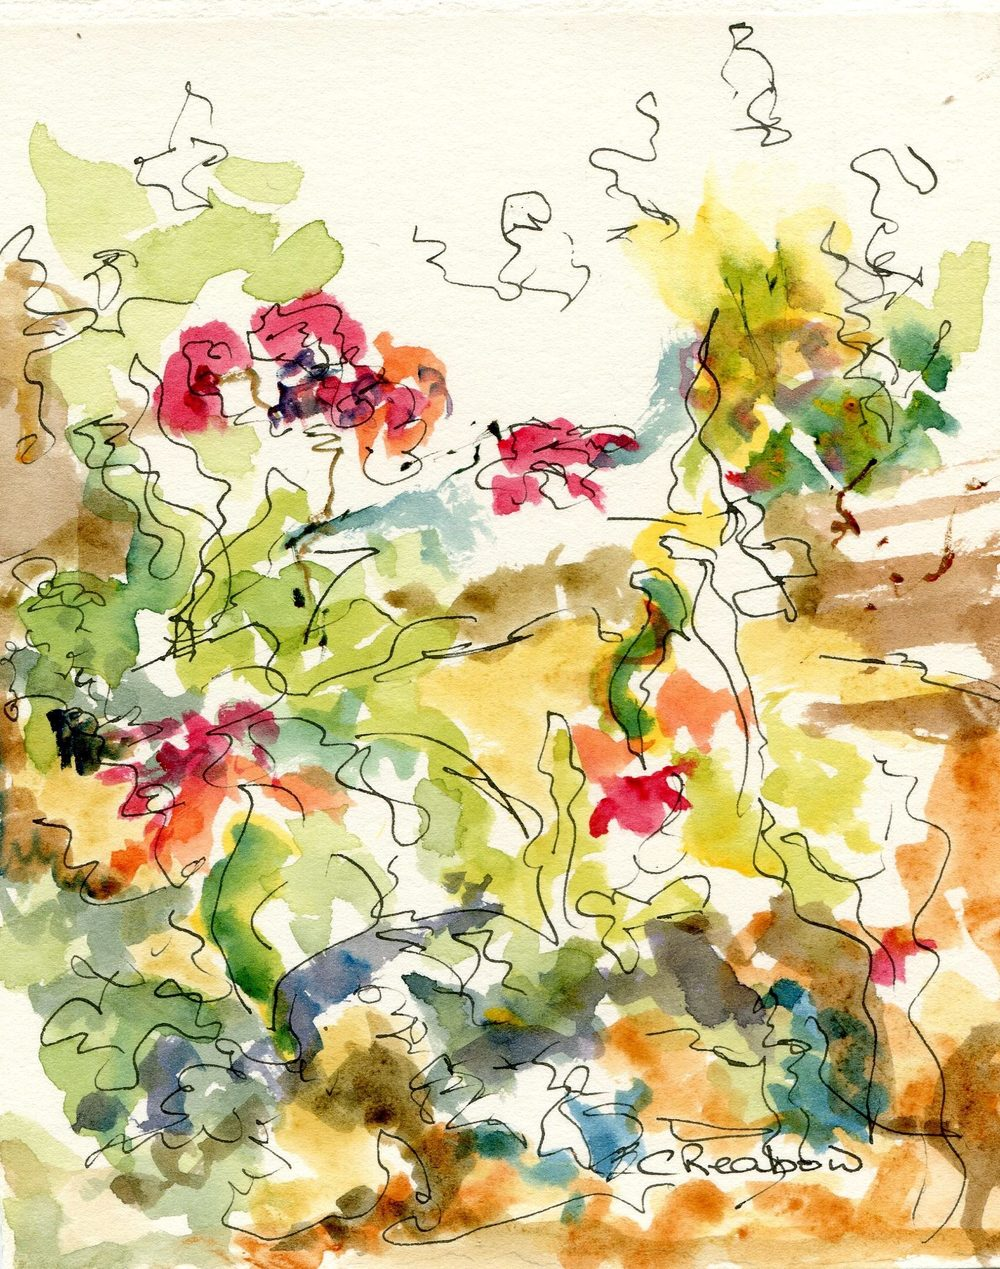 60b Reabow,Chris- Floral Study II, Watercolour and Ink.jpg